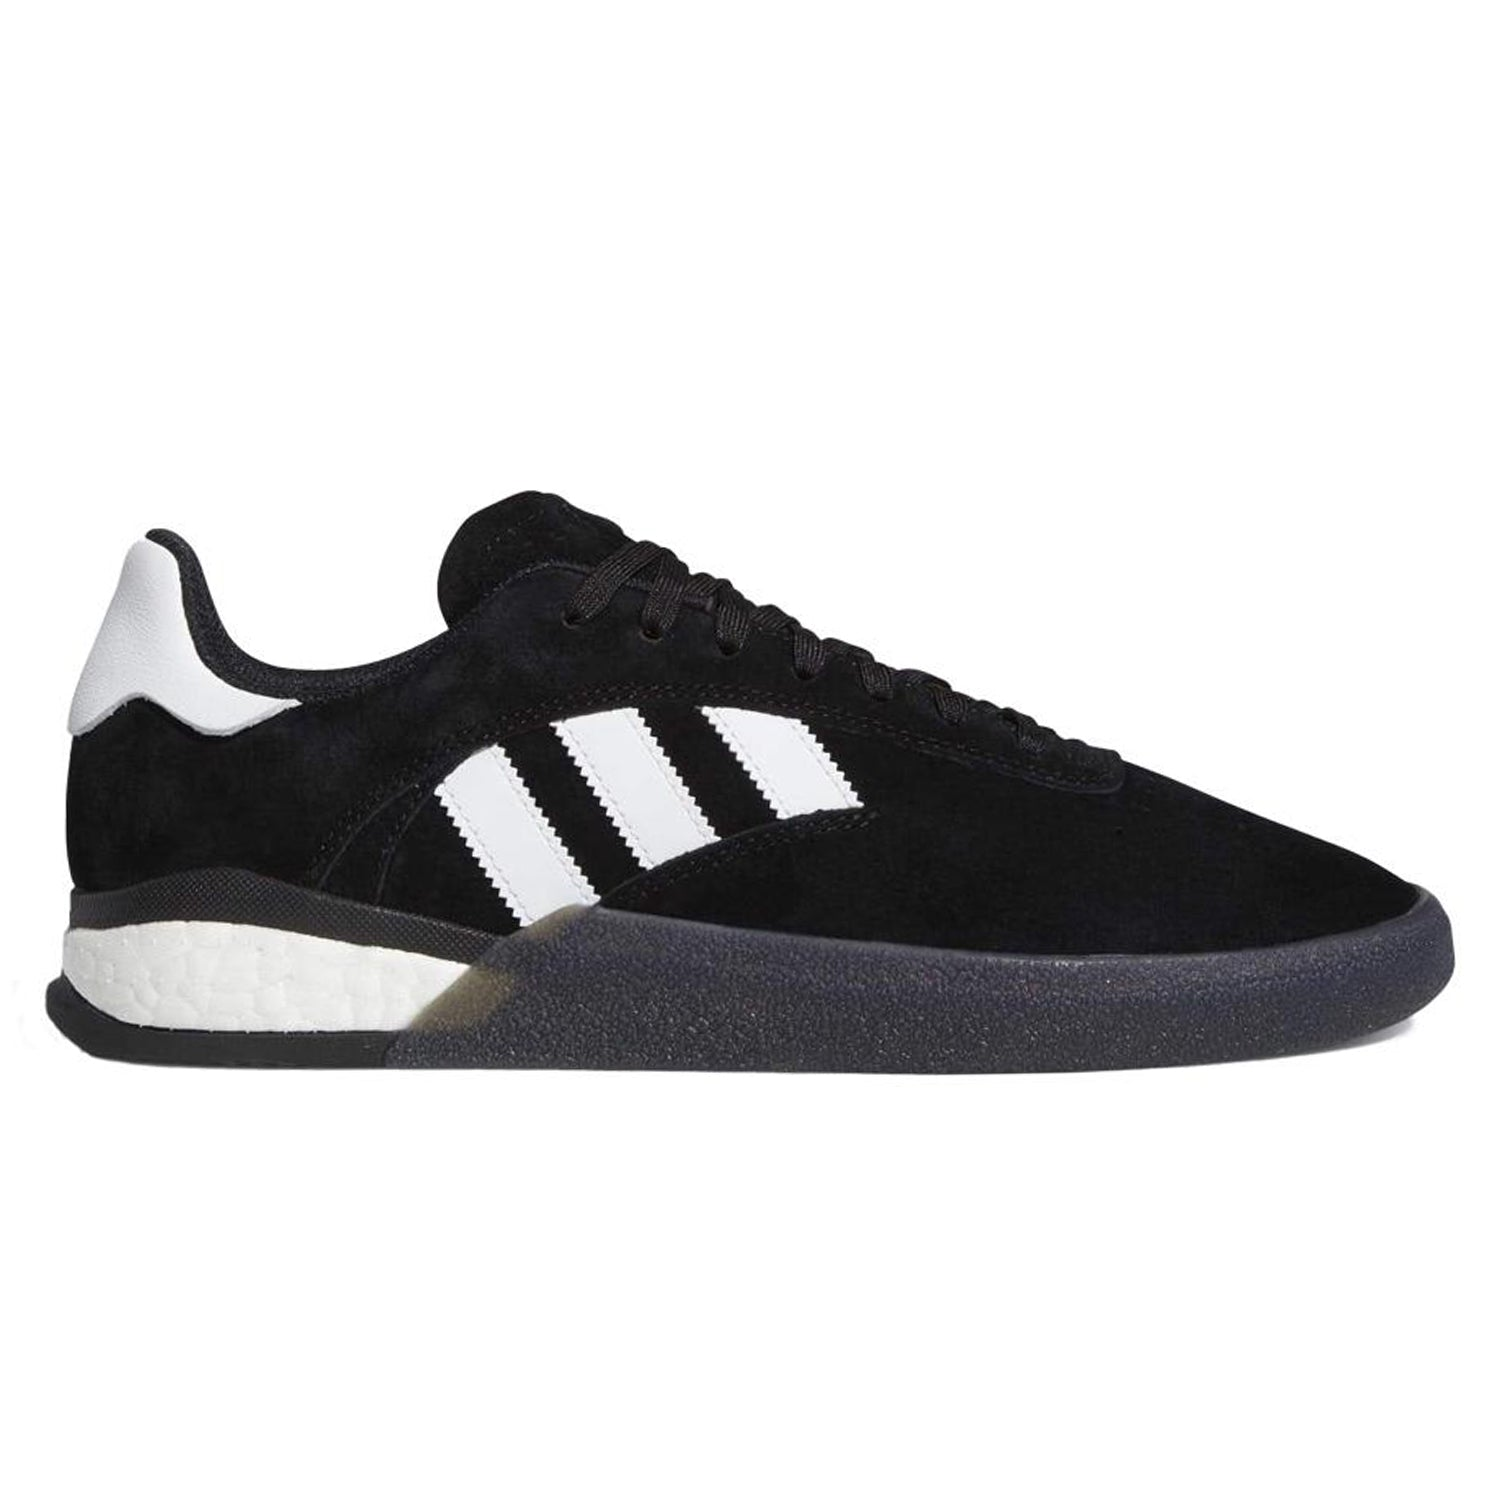 Adidas 3ST.004 Black/White/Gum